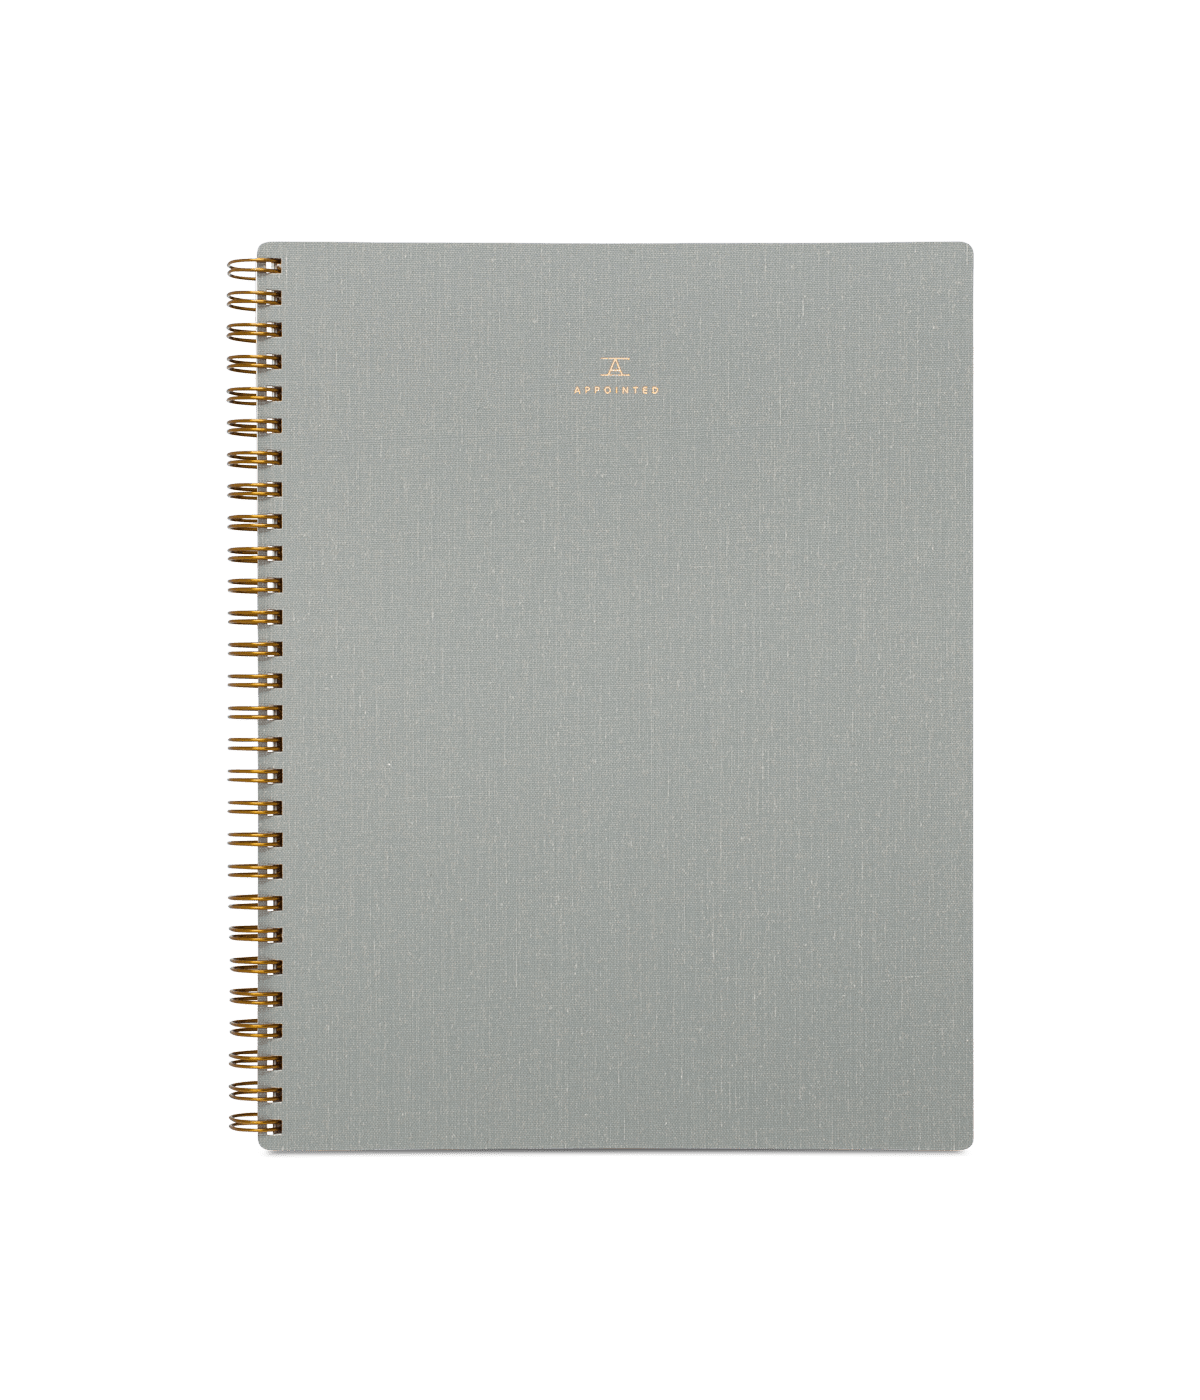 Notebook transparent blank. Appointed franklin poe